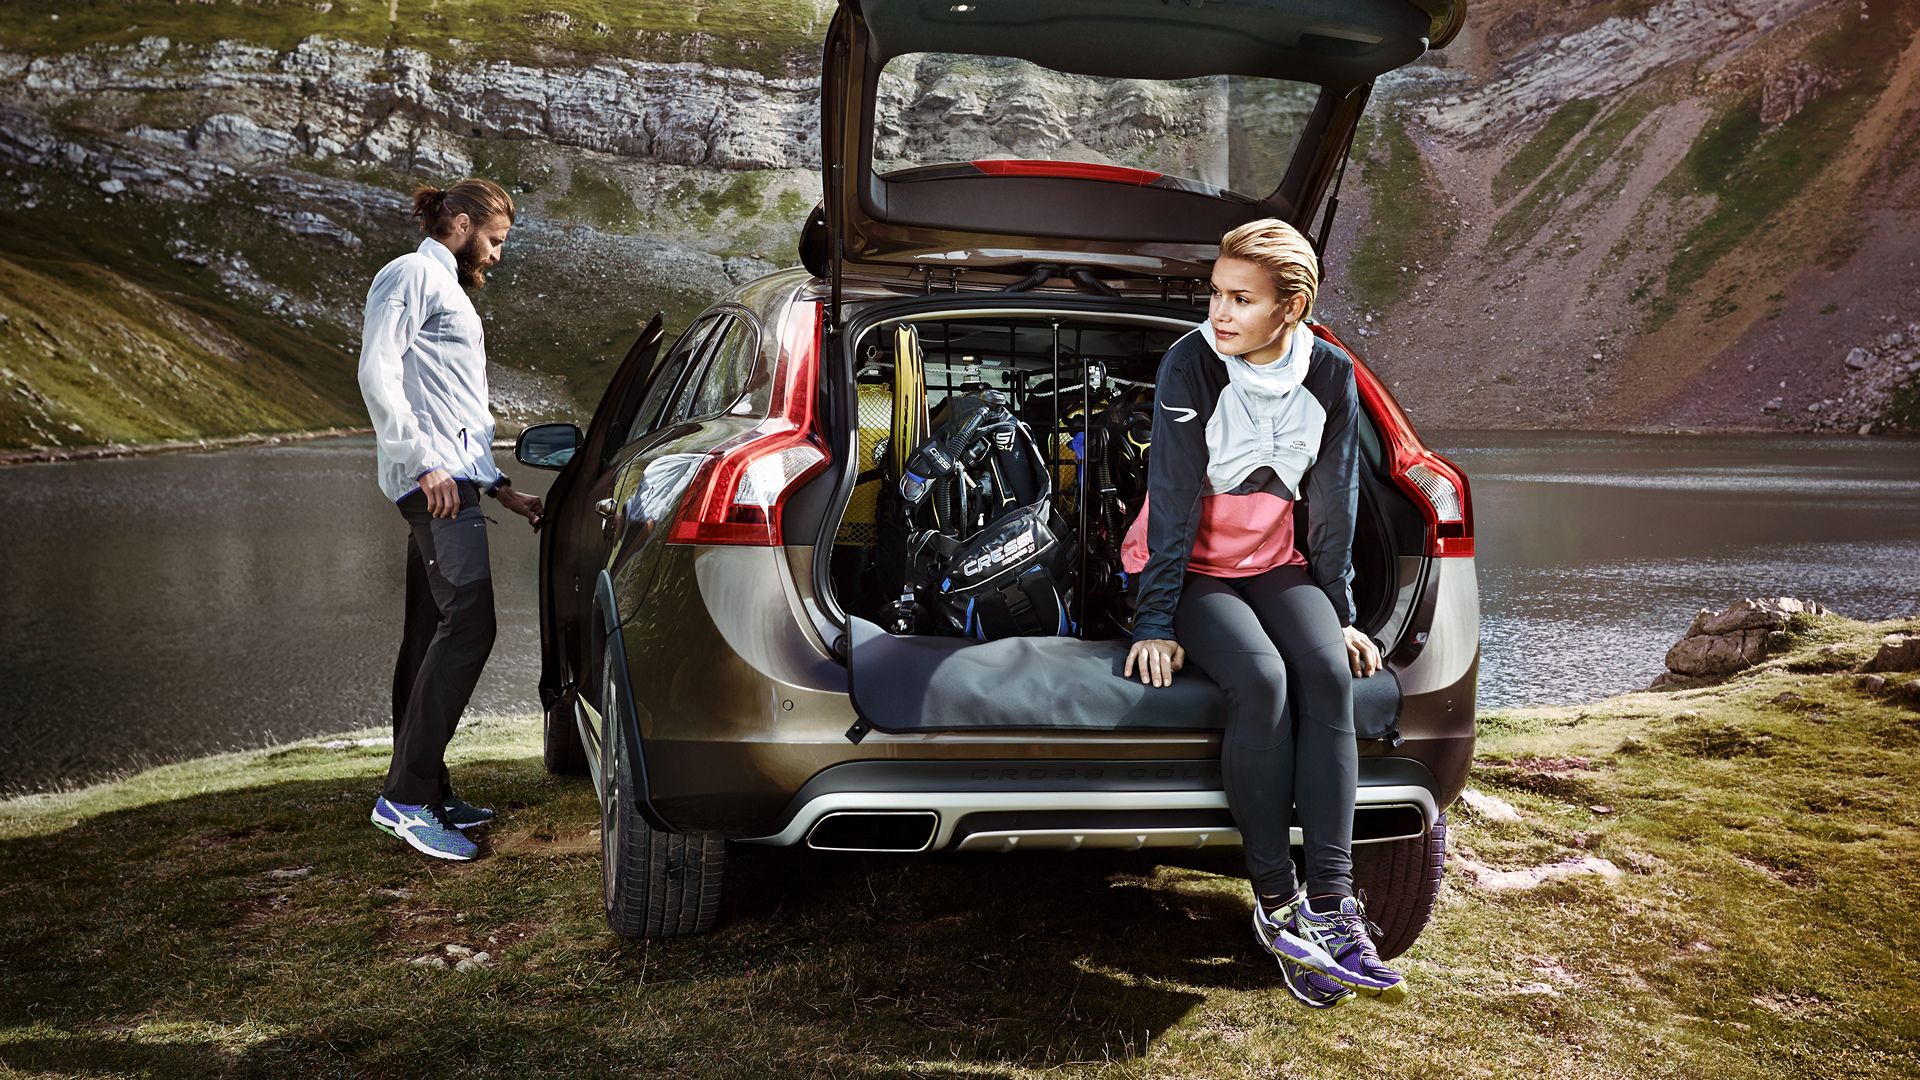 2016 Volvo V60 Cross Country © Zhejiang Geely Holding Group Co., Ltd